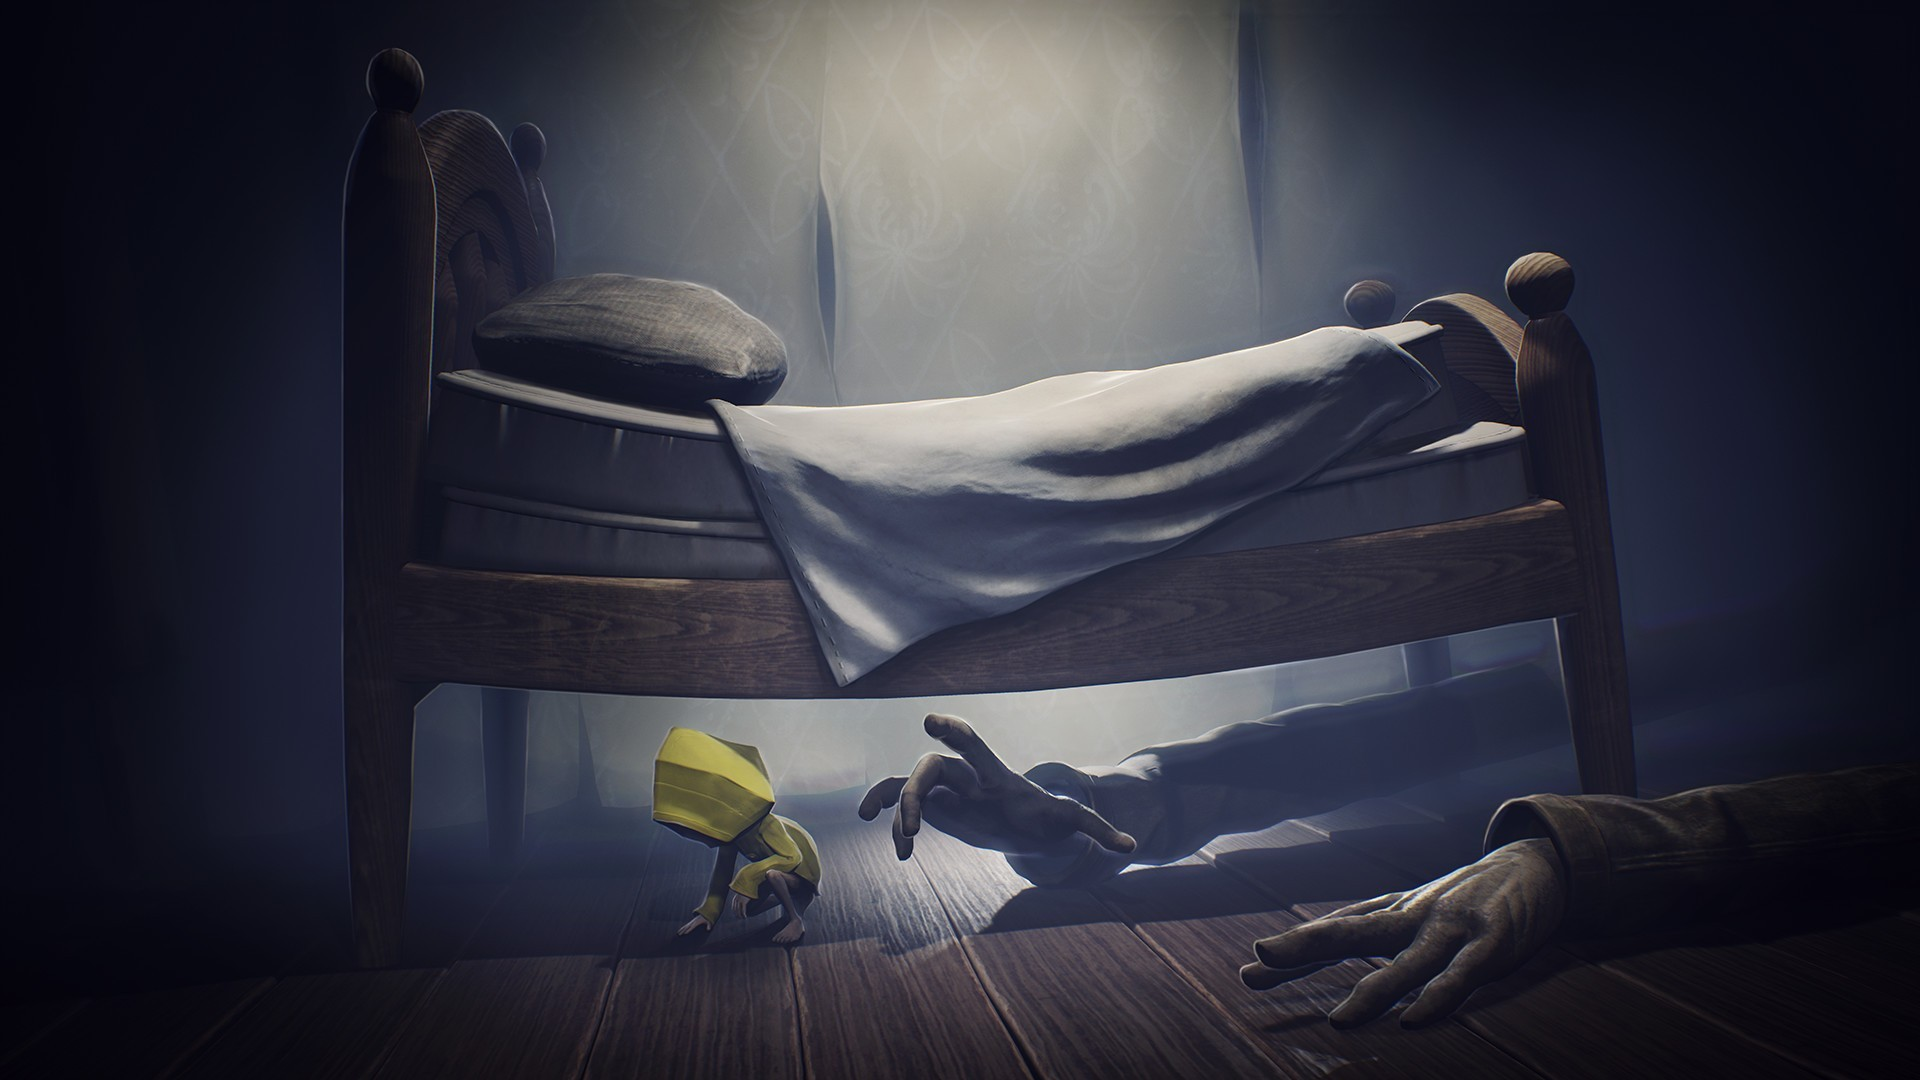 https://s2.gaming-cdn.com/images/products/4660/screenshot/little-nightmares-complete-edition-switch-wallpaper-3.jpg